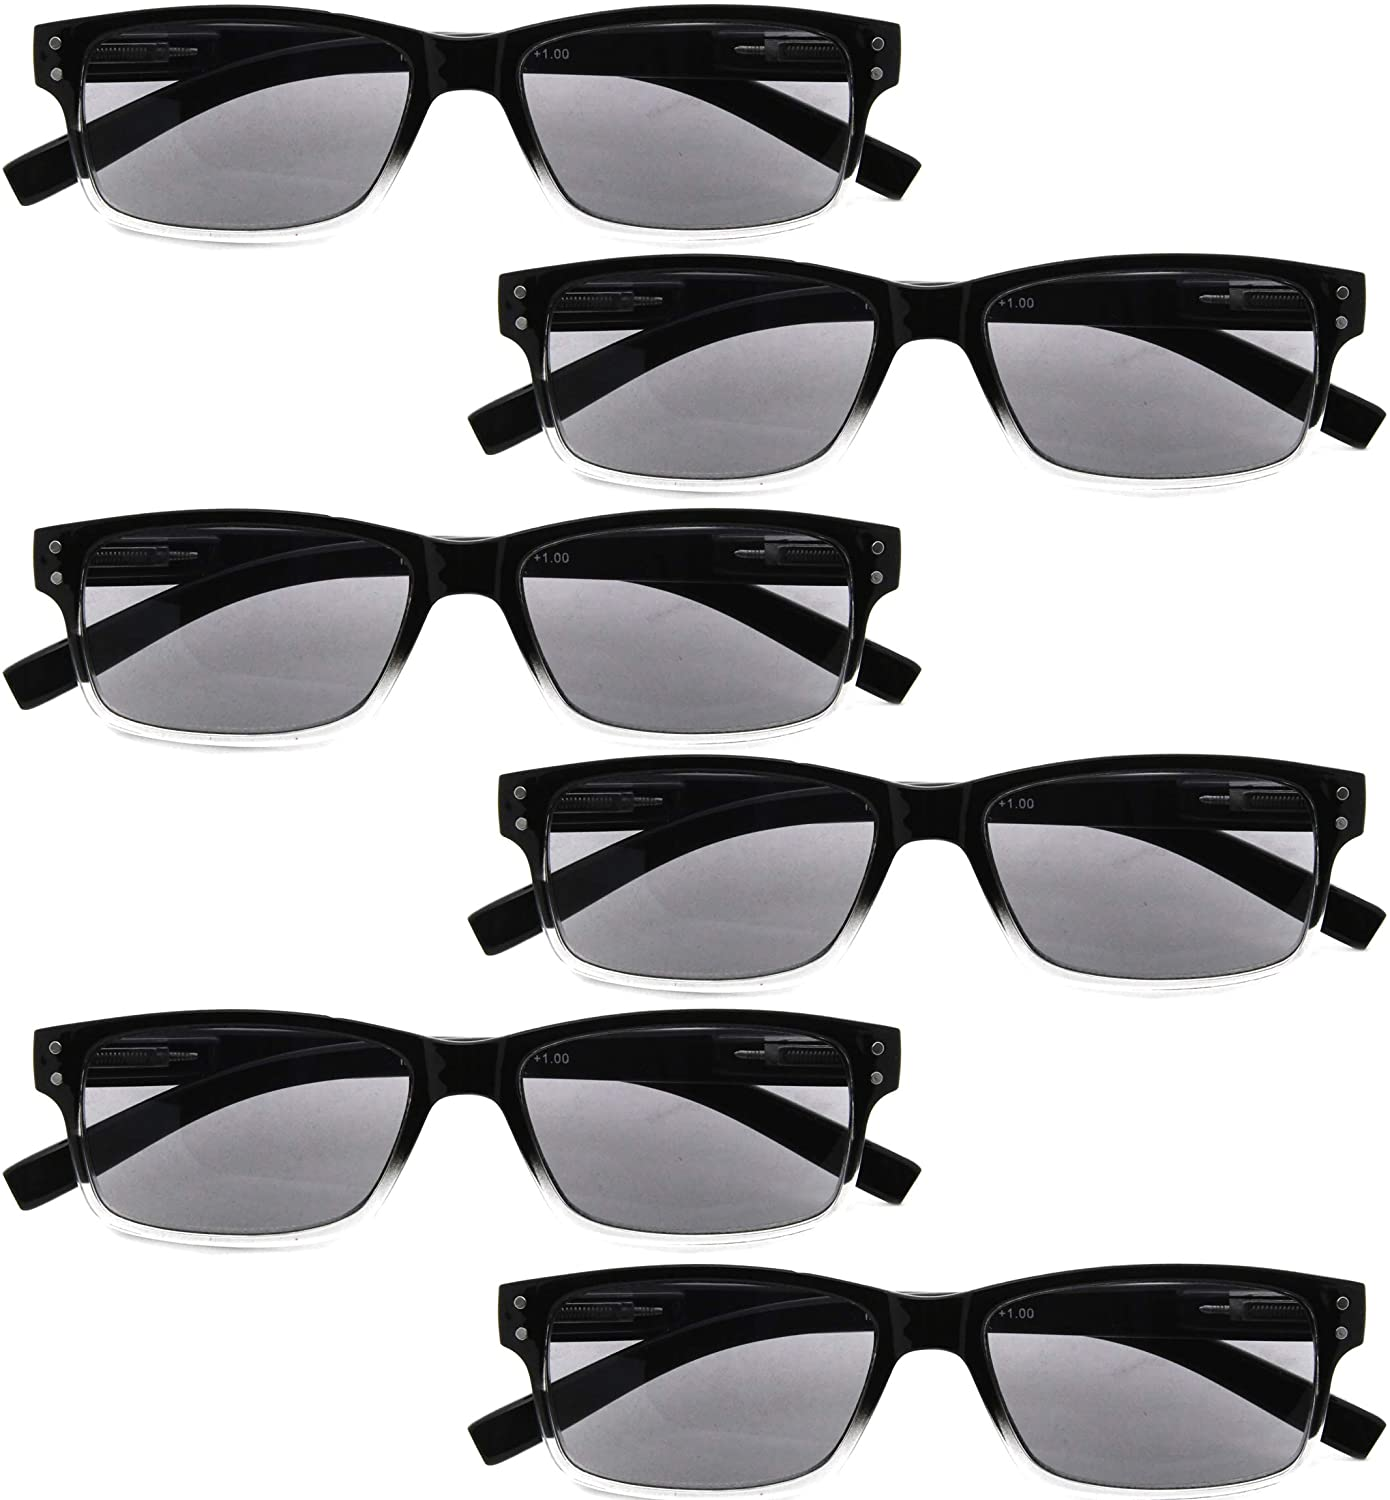 BFOCO 6 Pairs Quality Spring Hinge Reading Glasses for Men and Women Readers